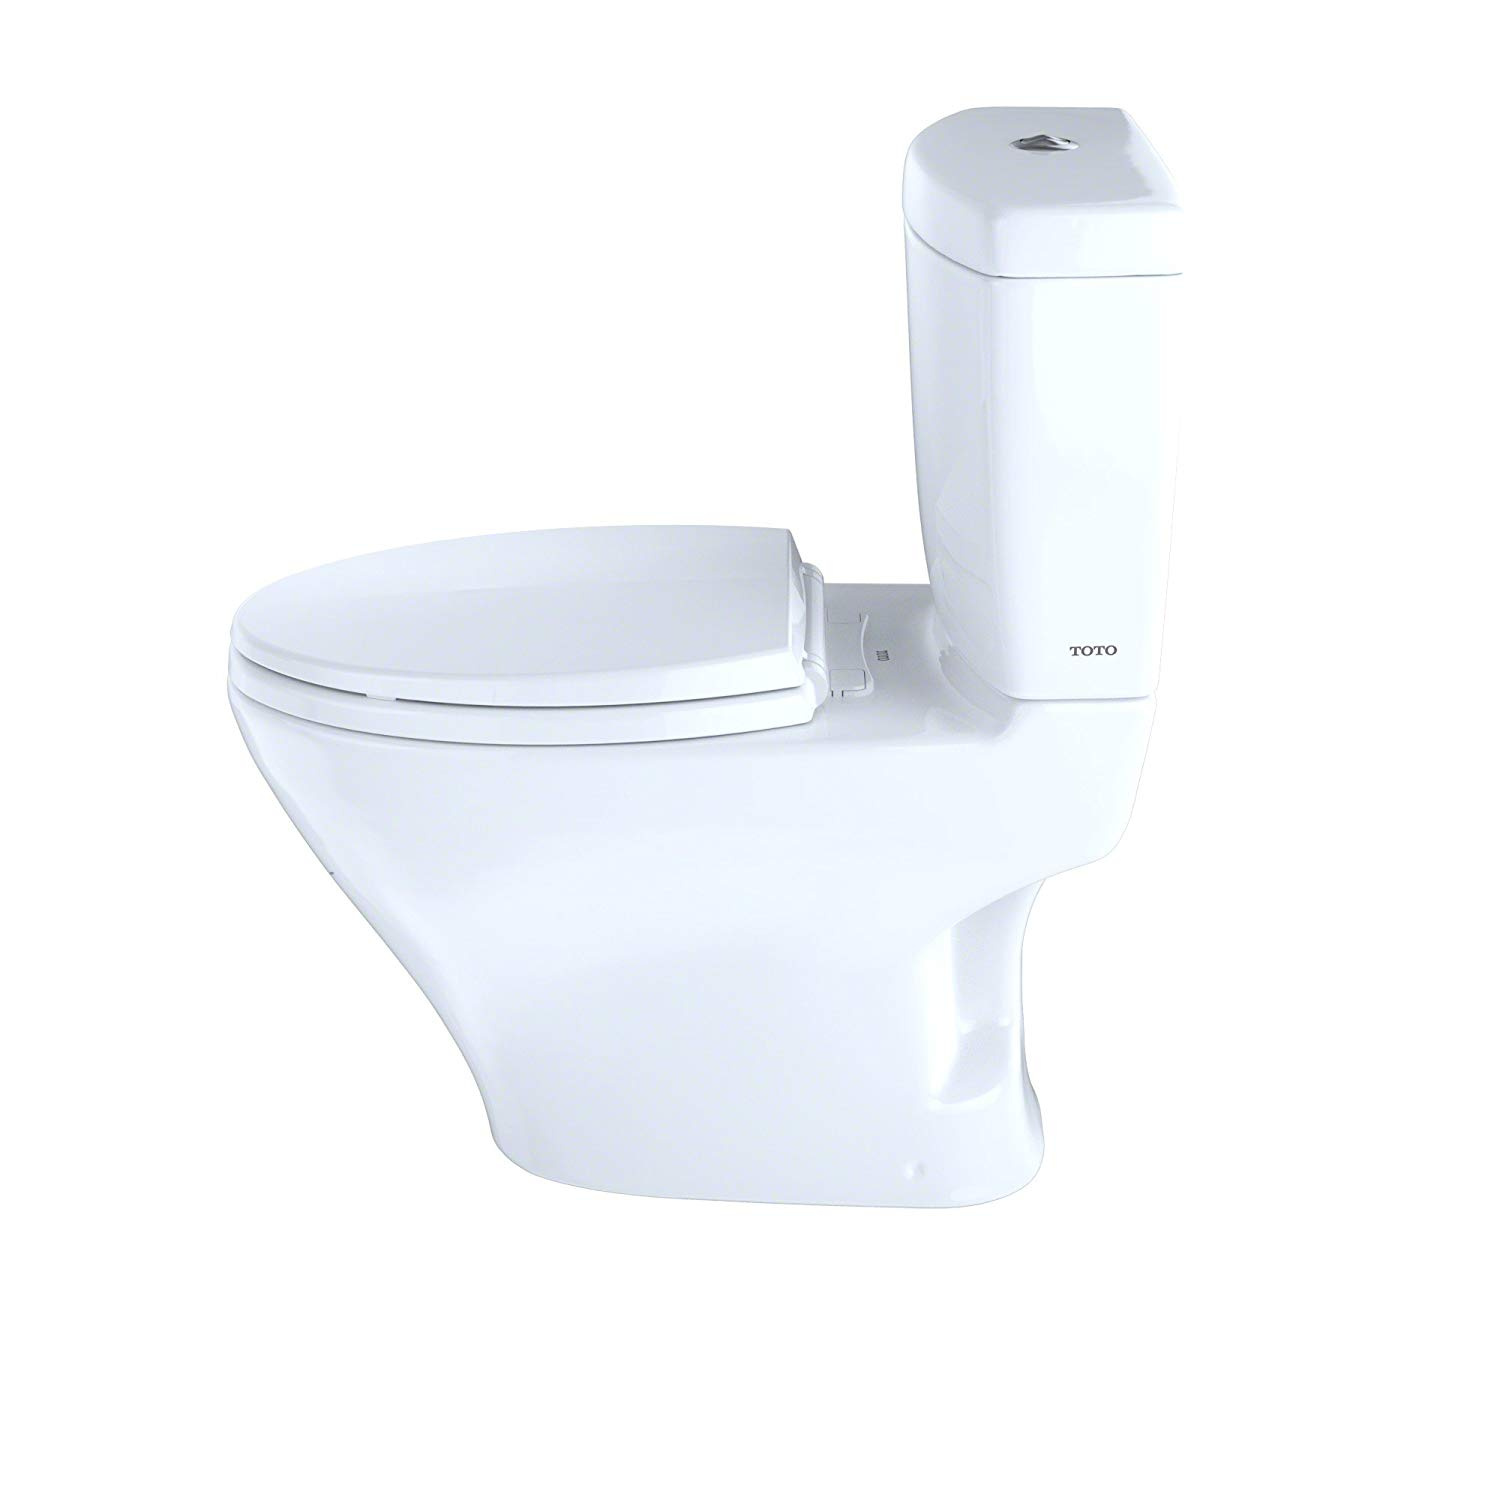 Toto Toilet Homeware: Buy Online from Fishpond.co.nz